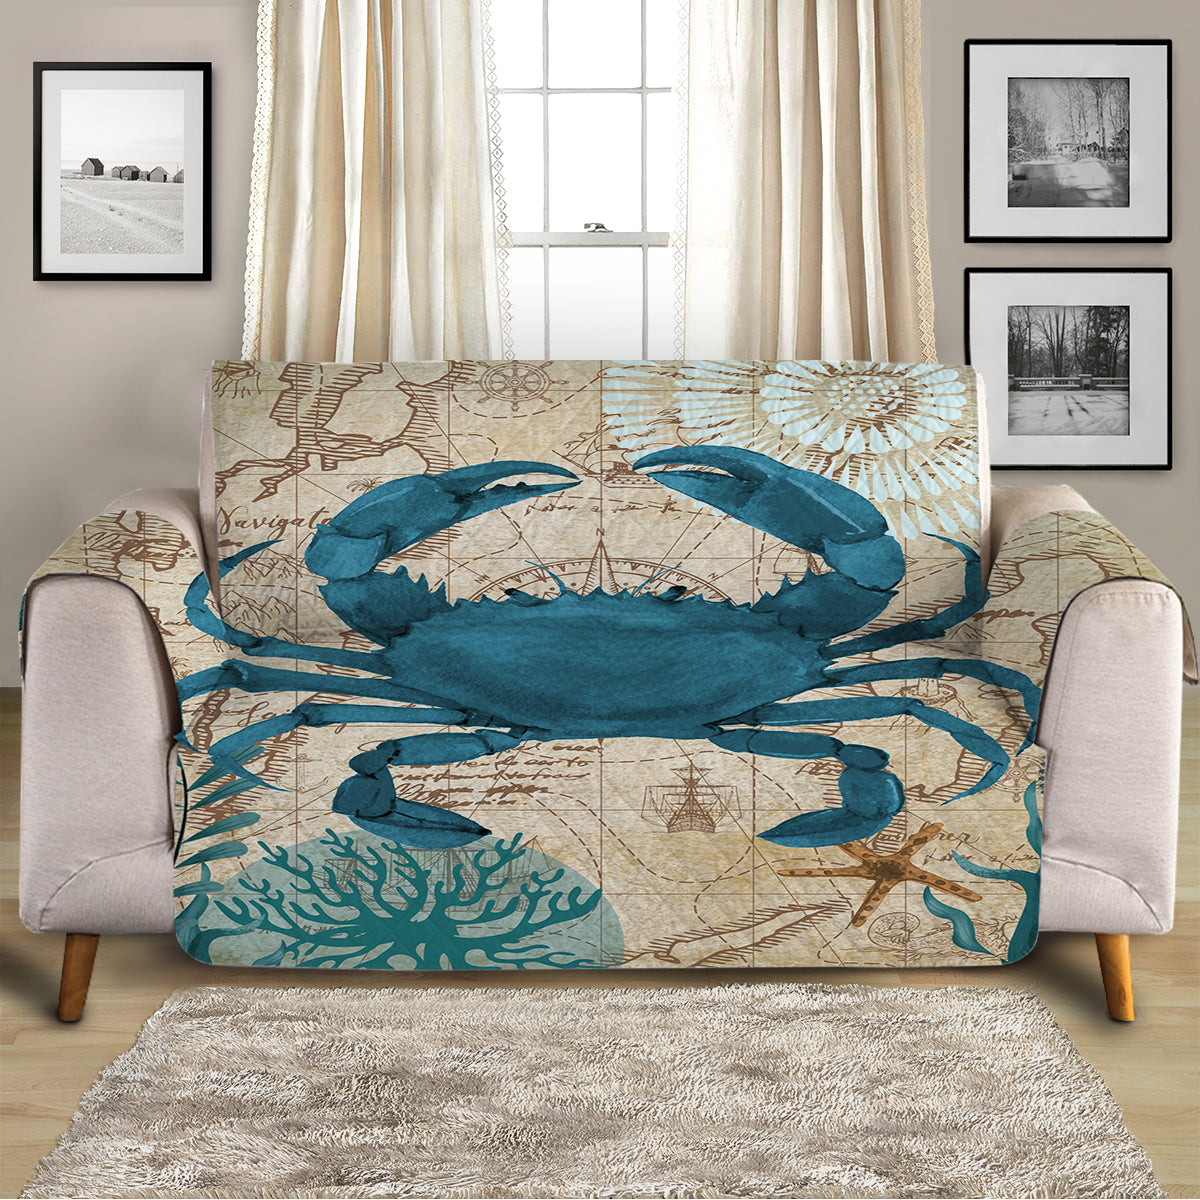 Crab Love Sofa Cover